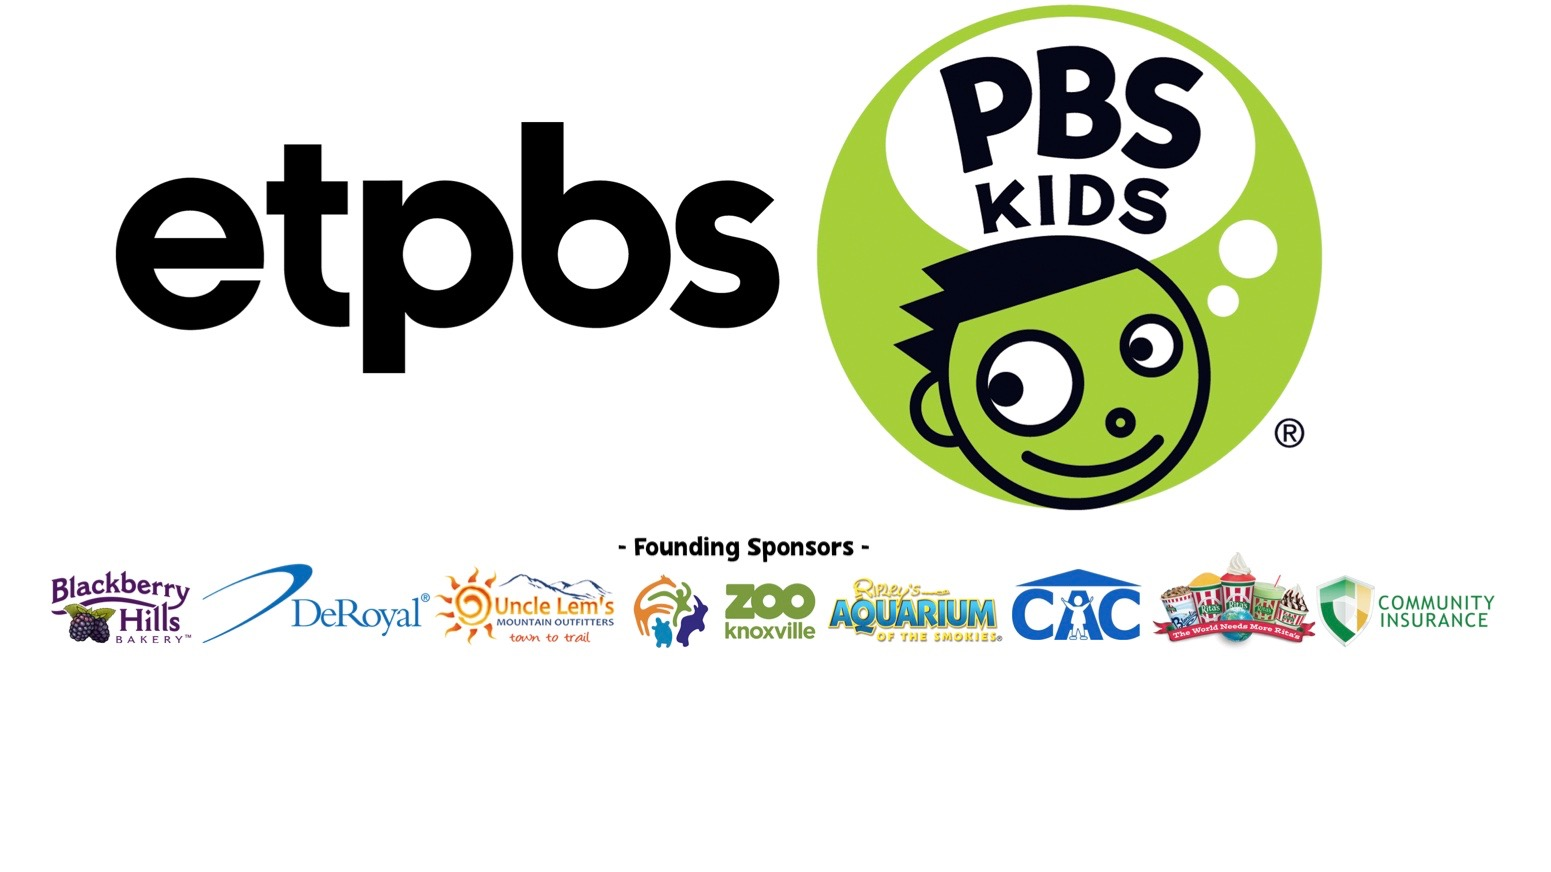 East Tennessee PBS KIDS